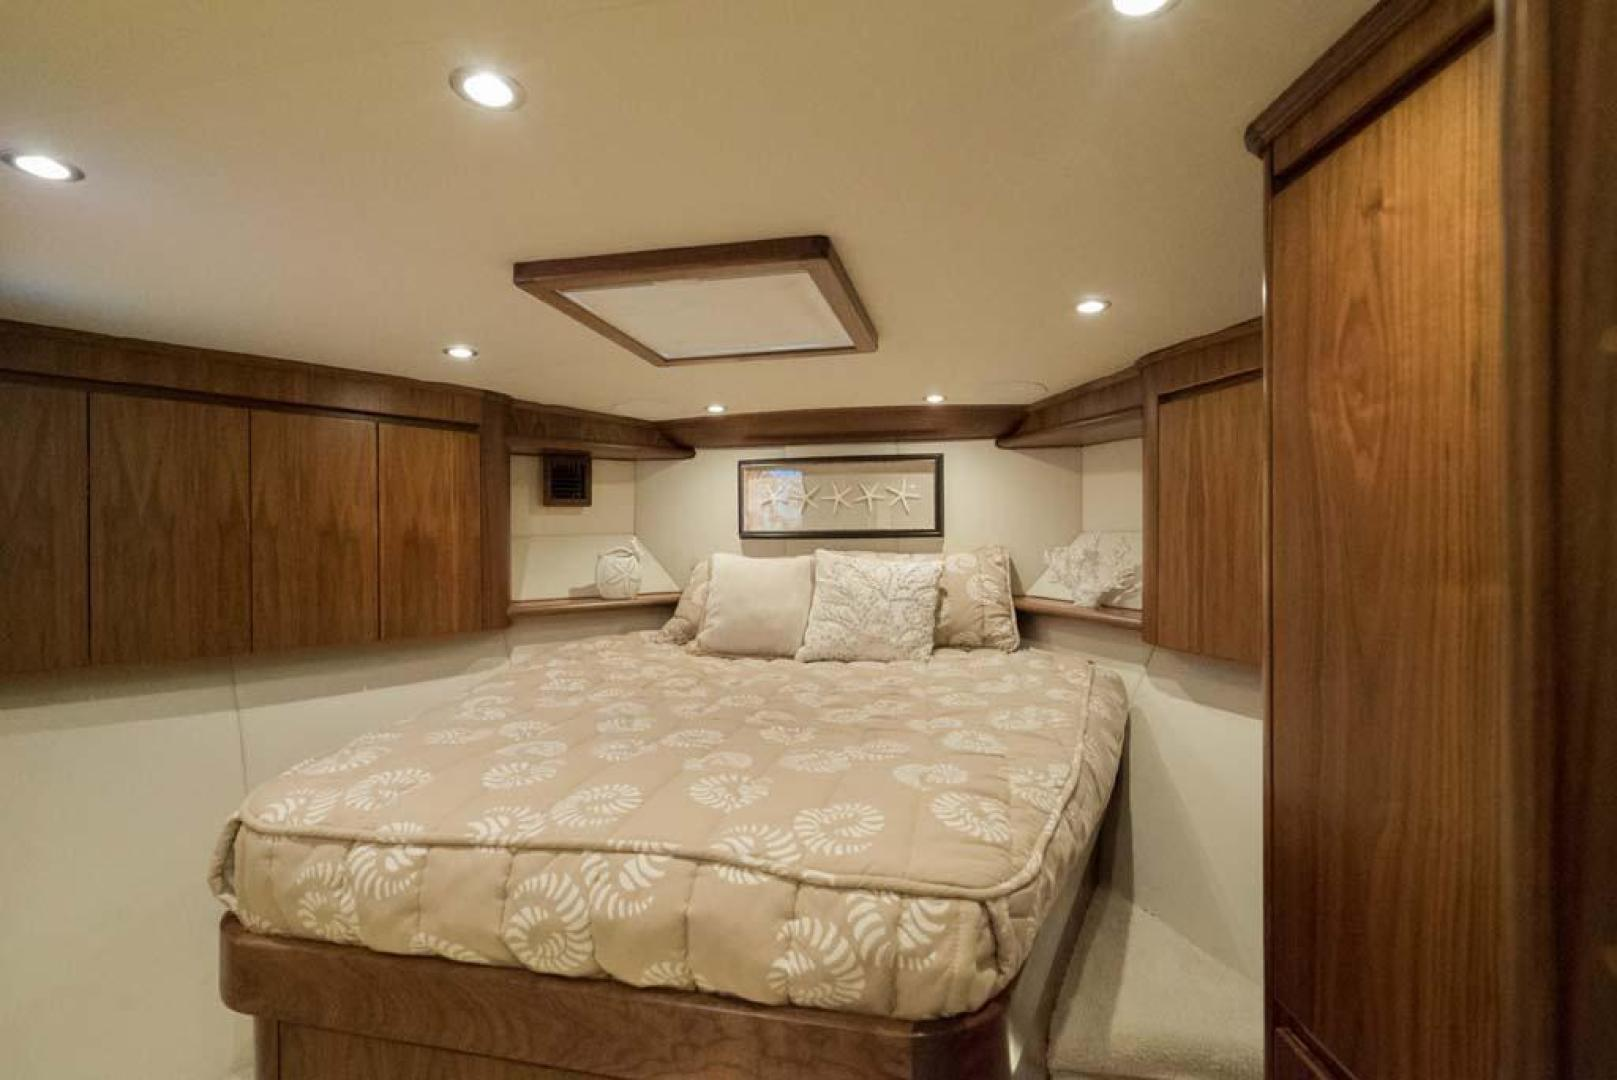 Monterey-65-Convertible-Custom-Sportfish-1991-Lady-Gemini-Mantoloking-New-Jersey-United-States-VIP-Stateroom-930419